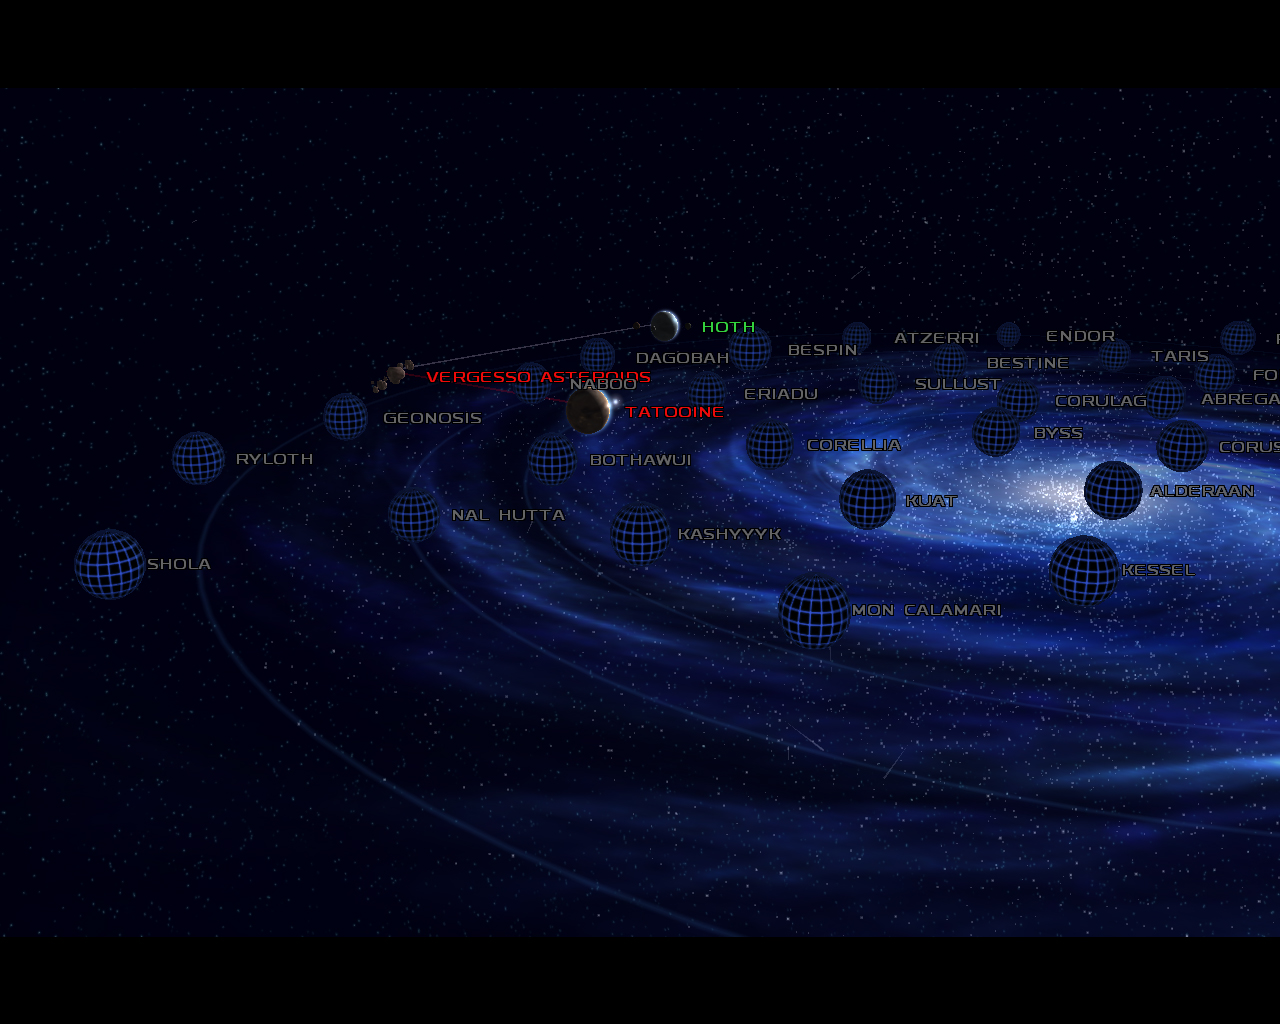 A portion of the Galactic Map